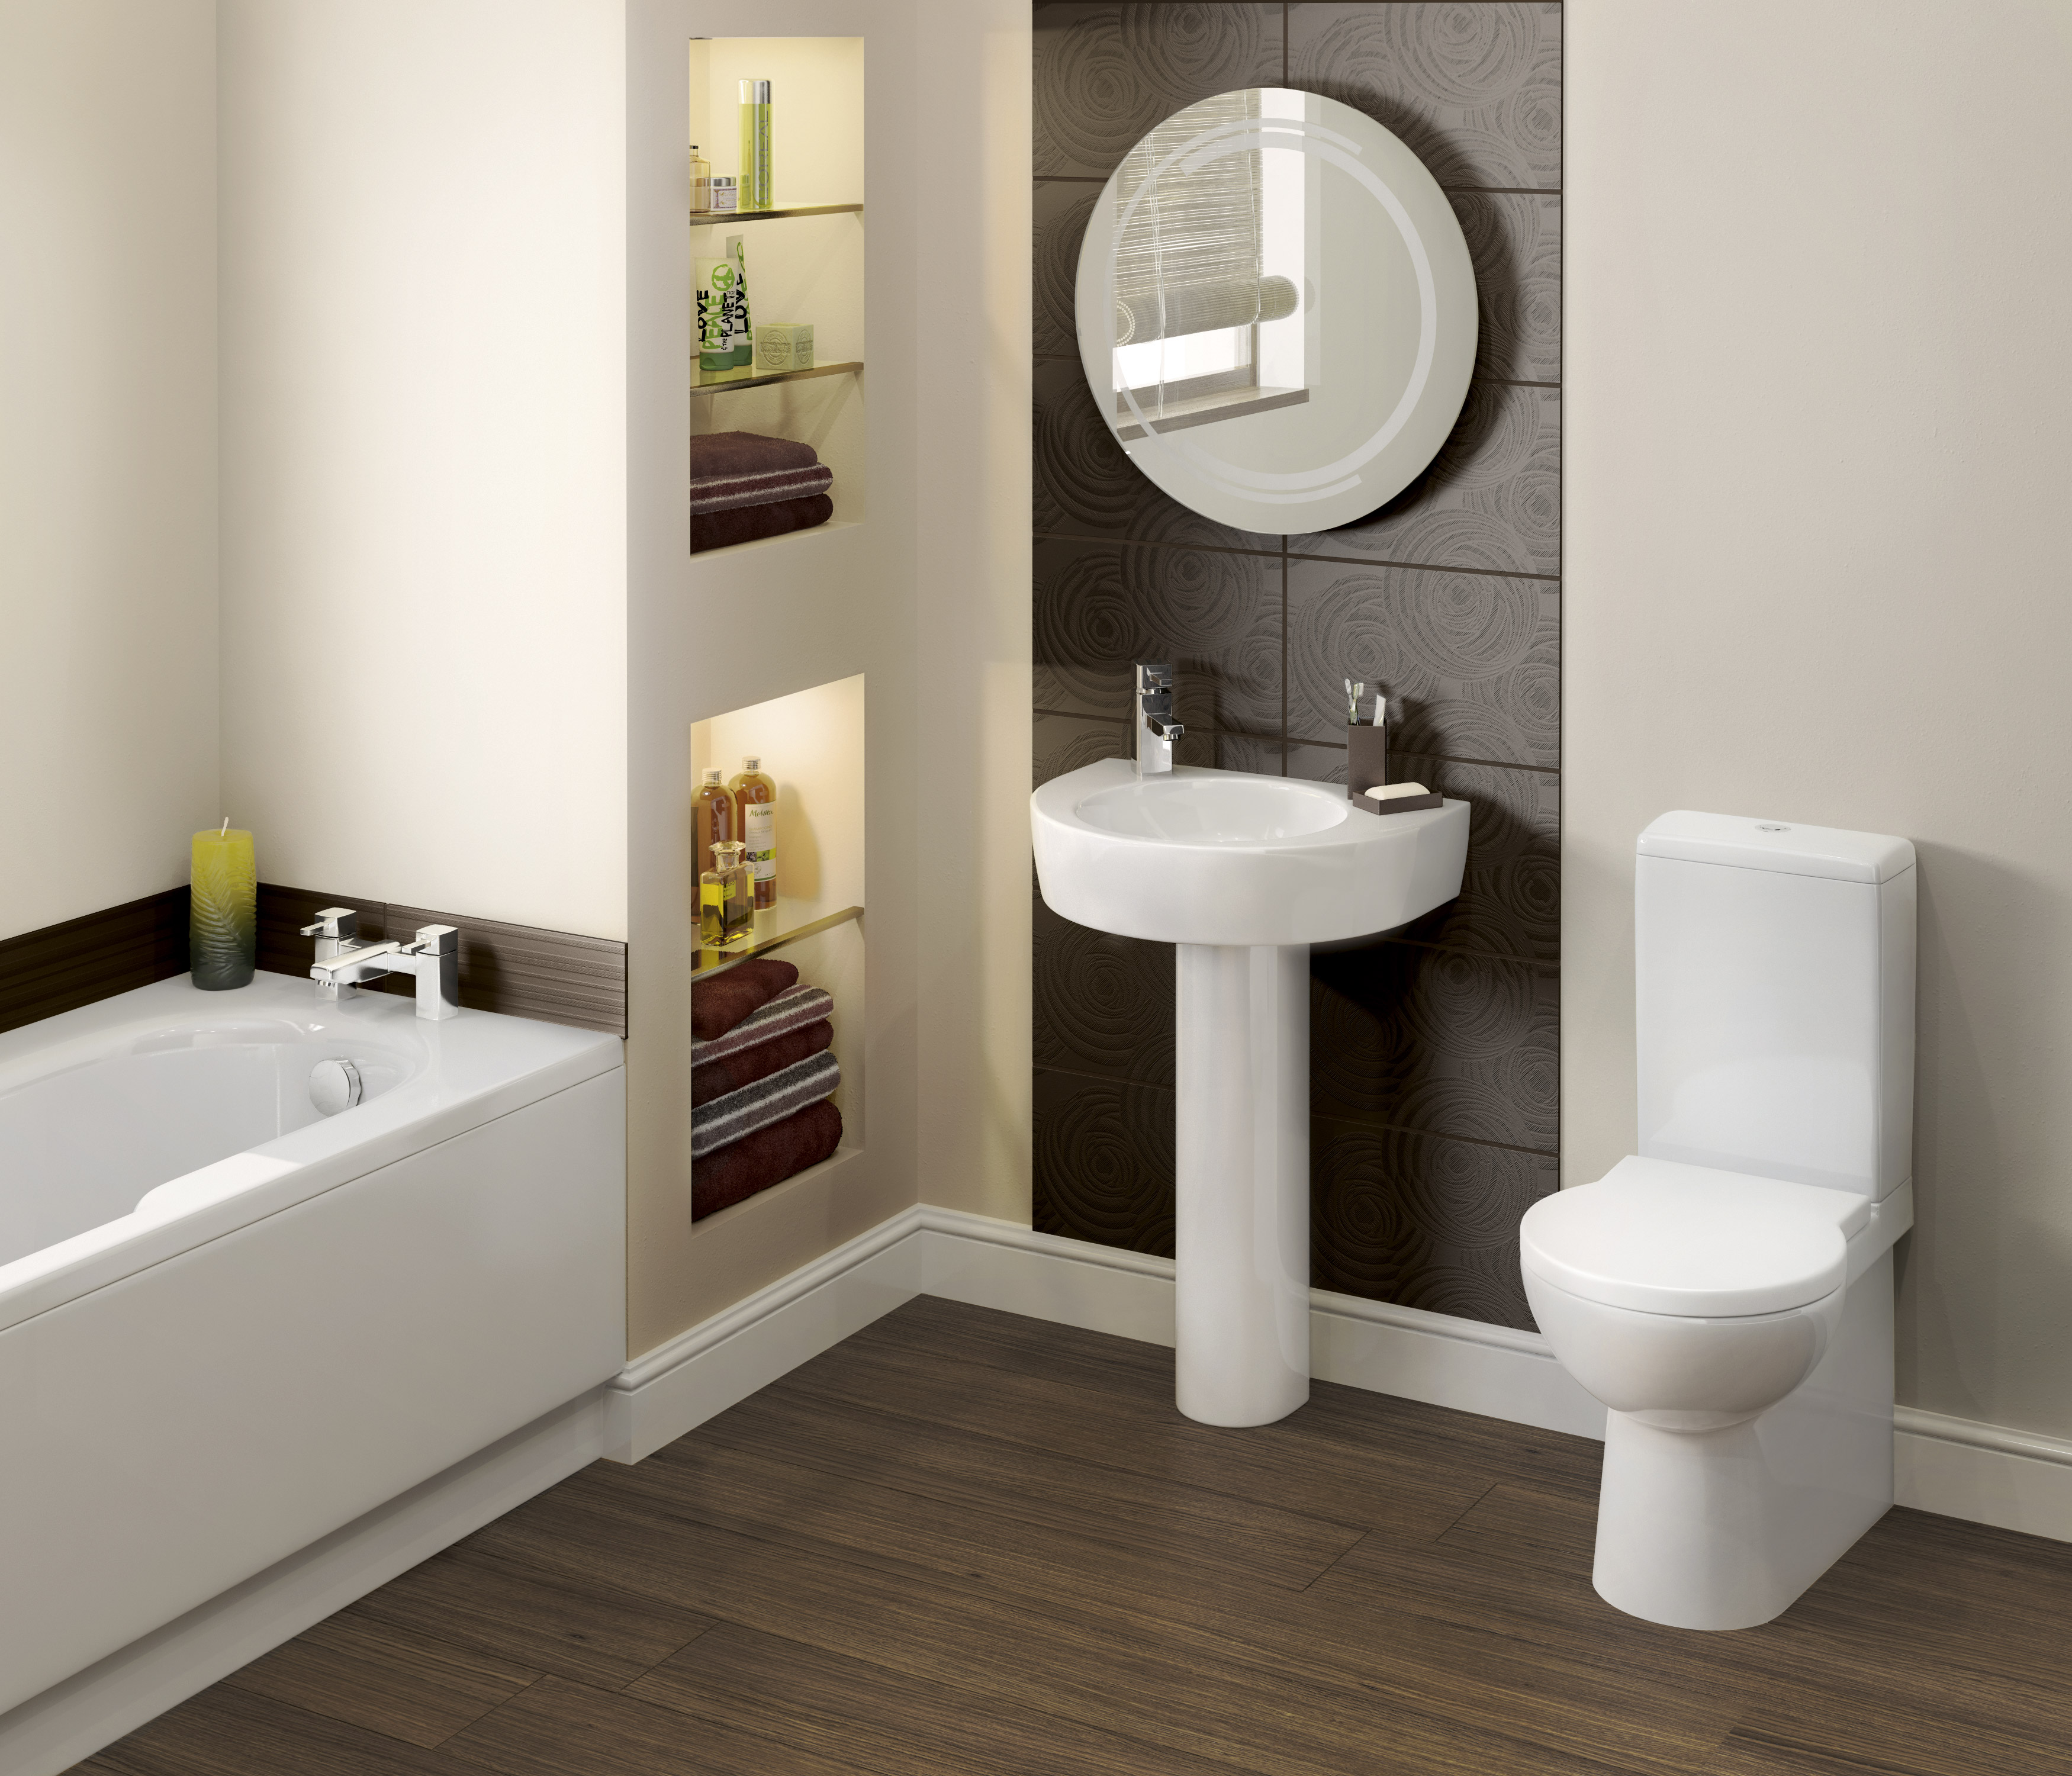 Bathroom design bathroom fitters bristol for Restroom design ideas